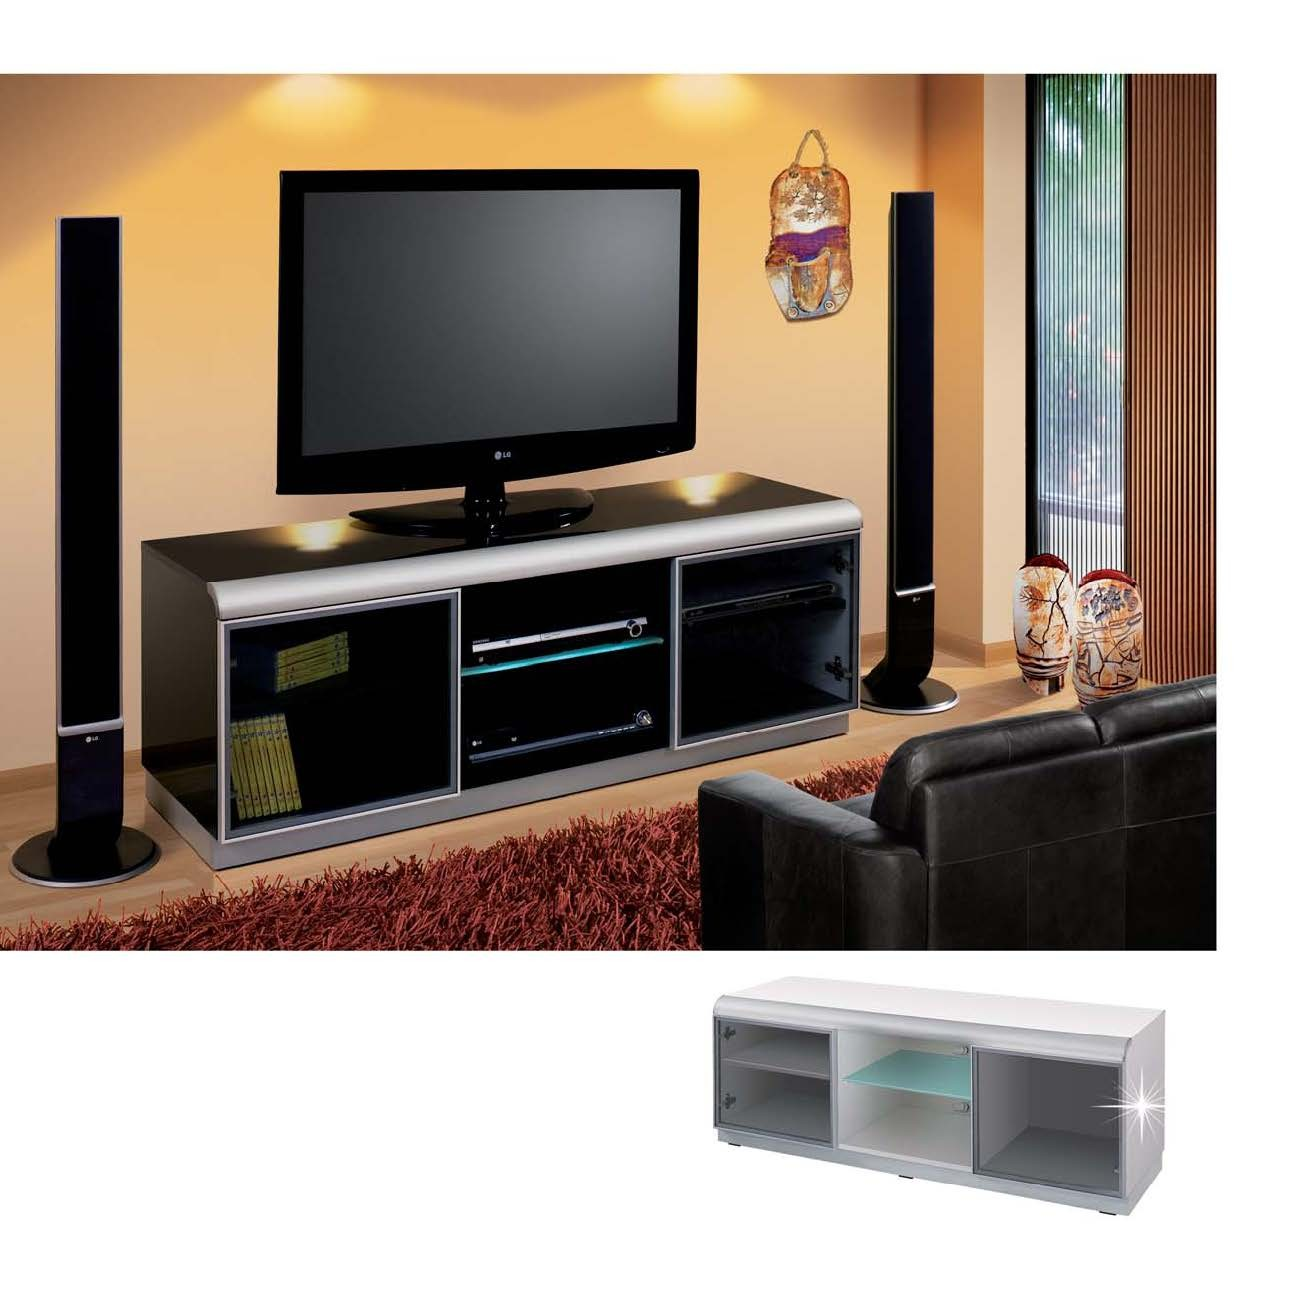 meuble tv hubertus denver blanc audiovisuel solution. Black Bedroom Furniture Sets. Home Design Ideas